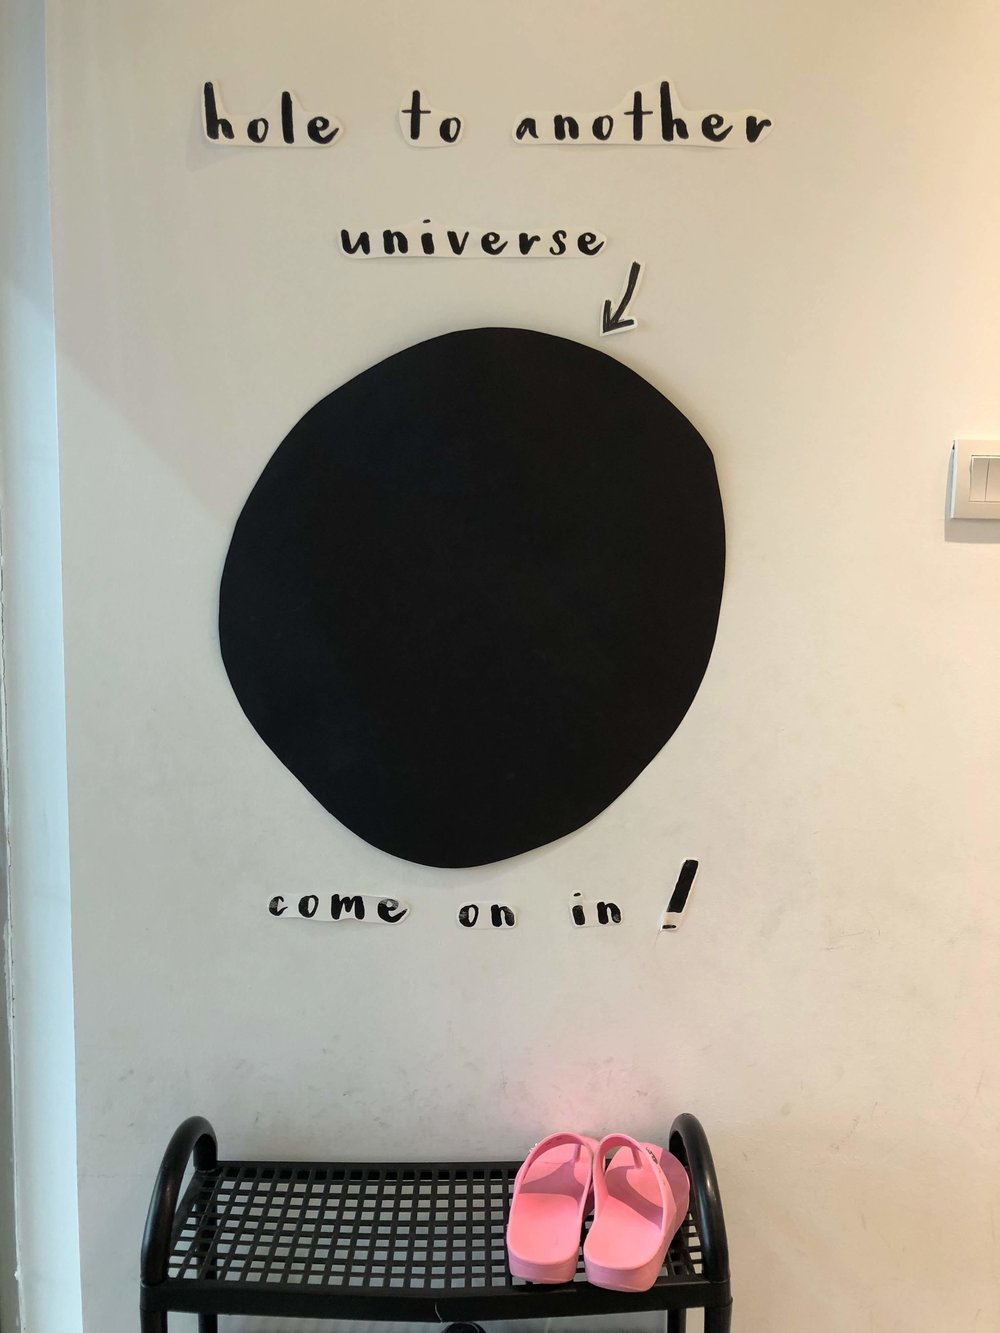 Hole to another universe - Lil' but Mighty Classroom display